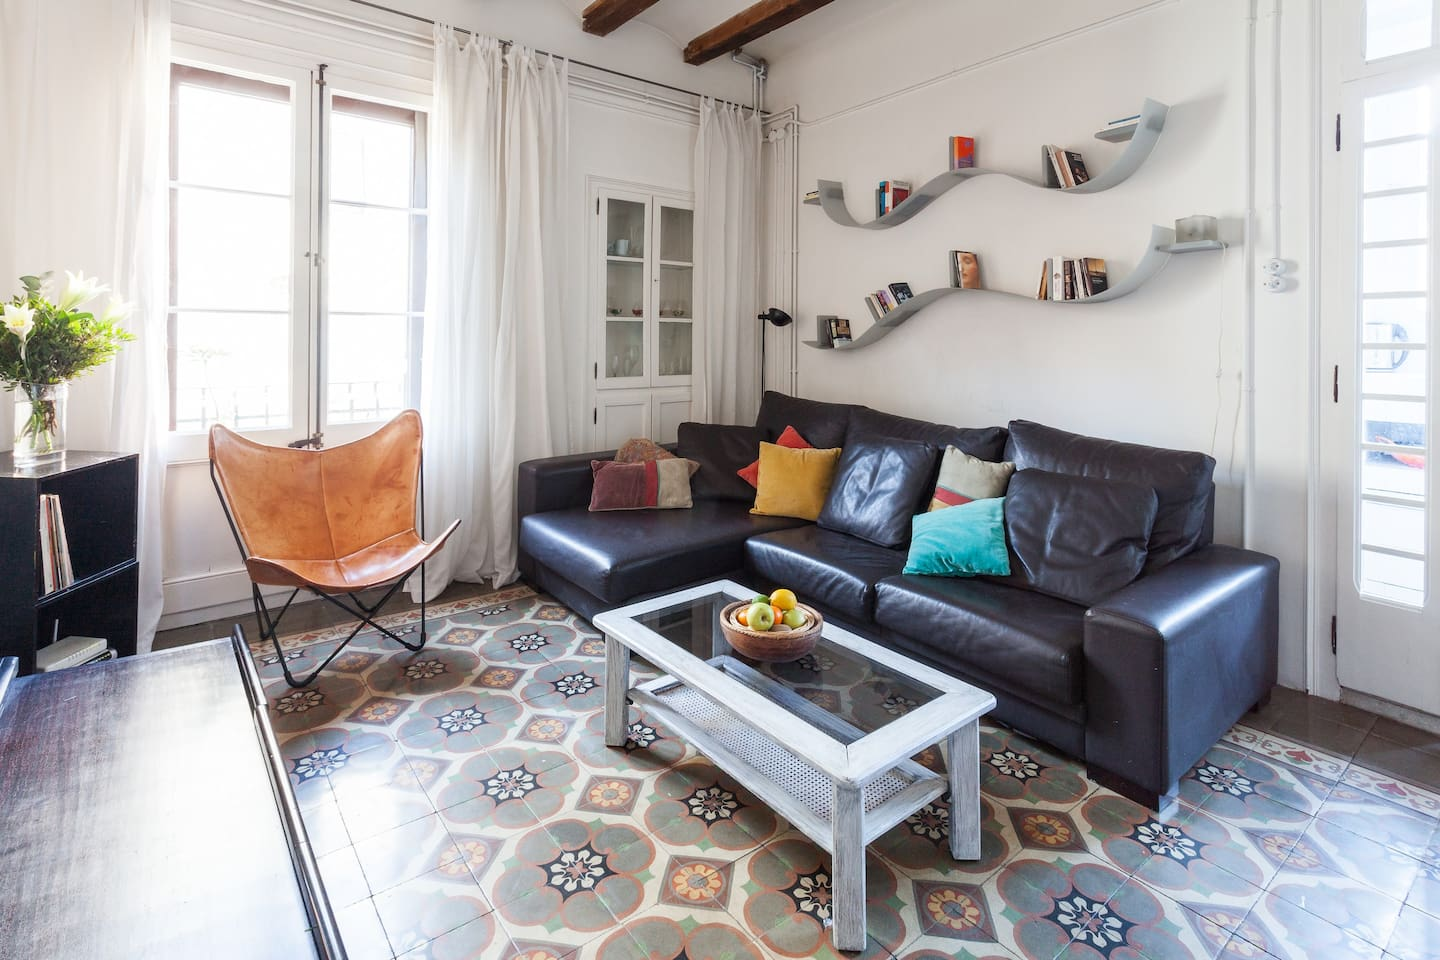 Very bright and beautiful living room with traditional tiled floors and wooden beams